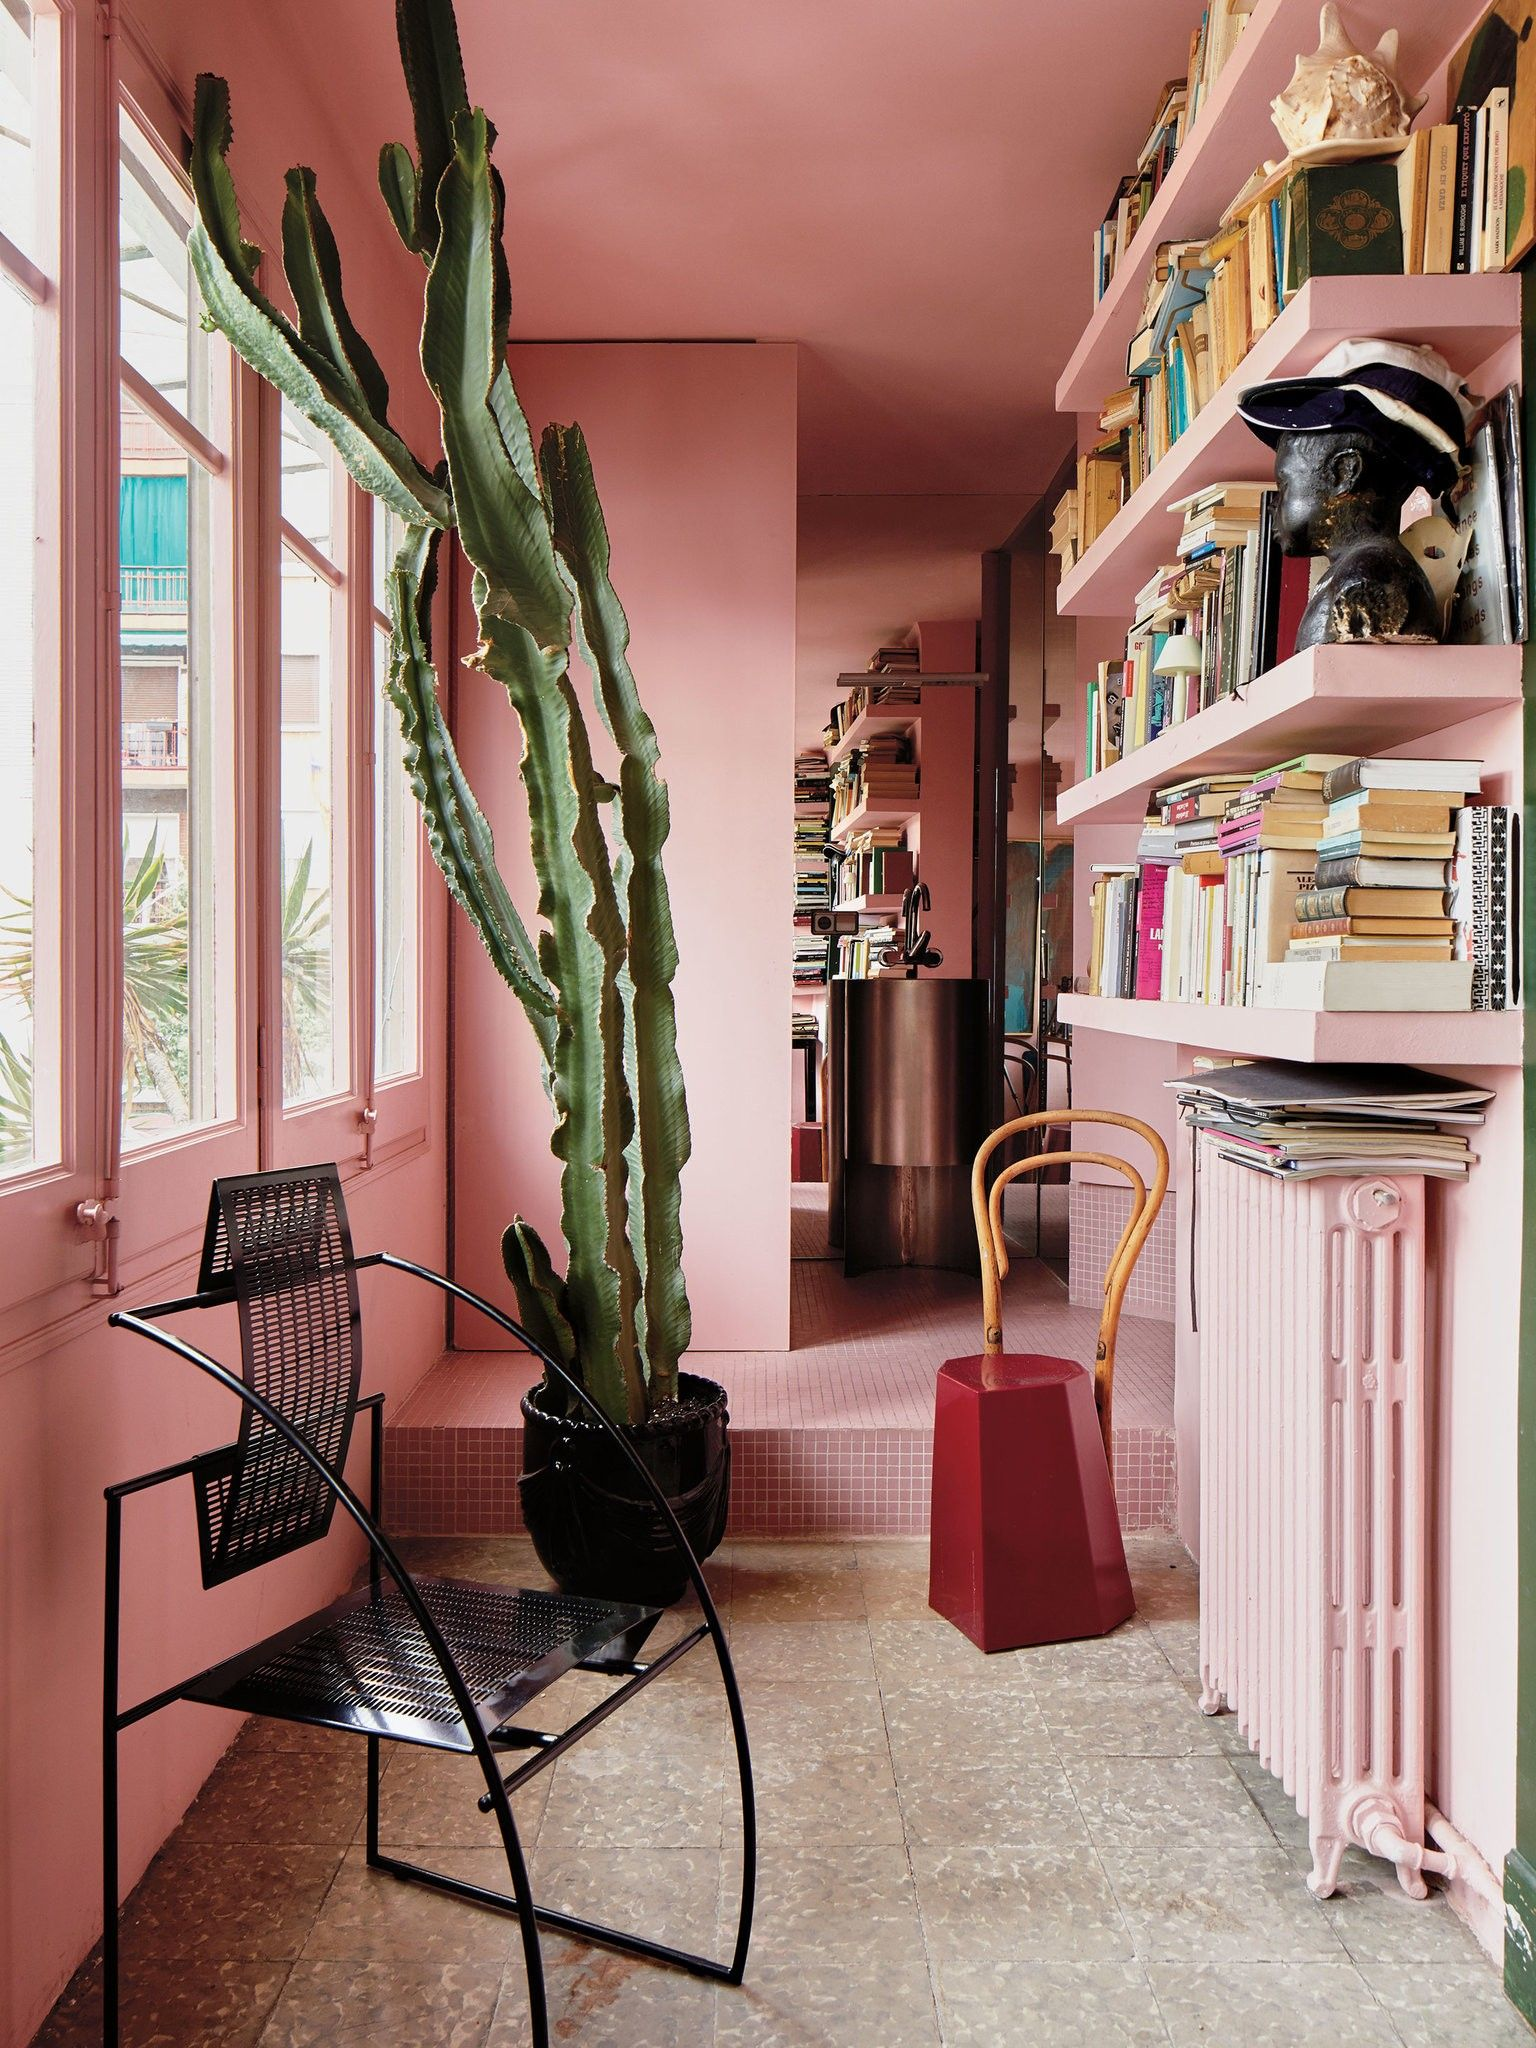 In Barcelona A House That Was Remade By Taking It Apart Published 2018 Colorful Interior Design Eclectic Interior Design Eclectic Interior